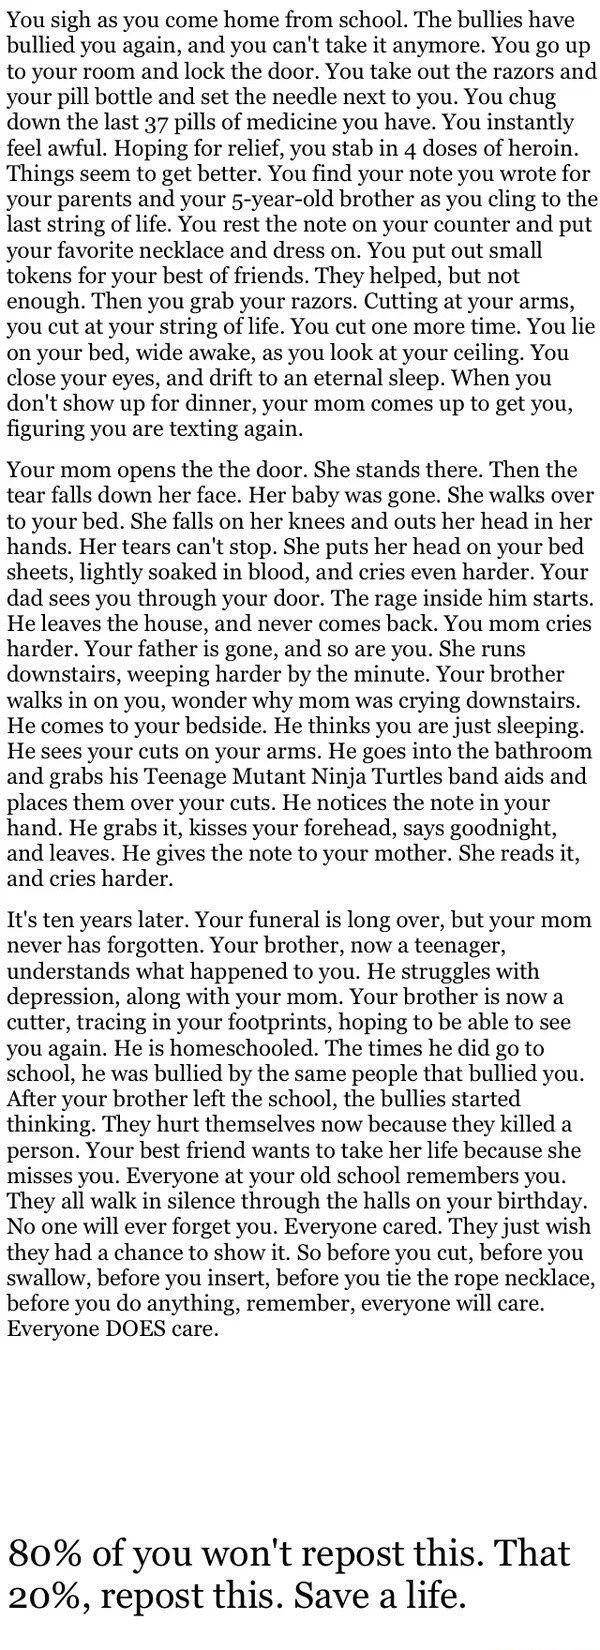 This made me cry.